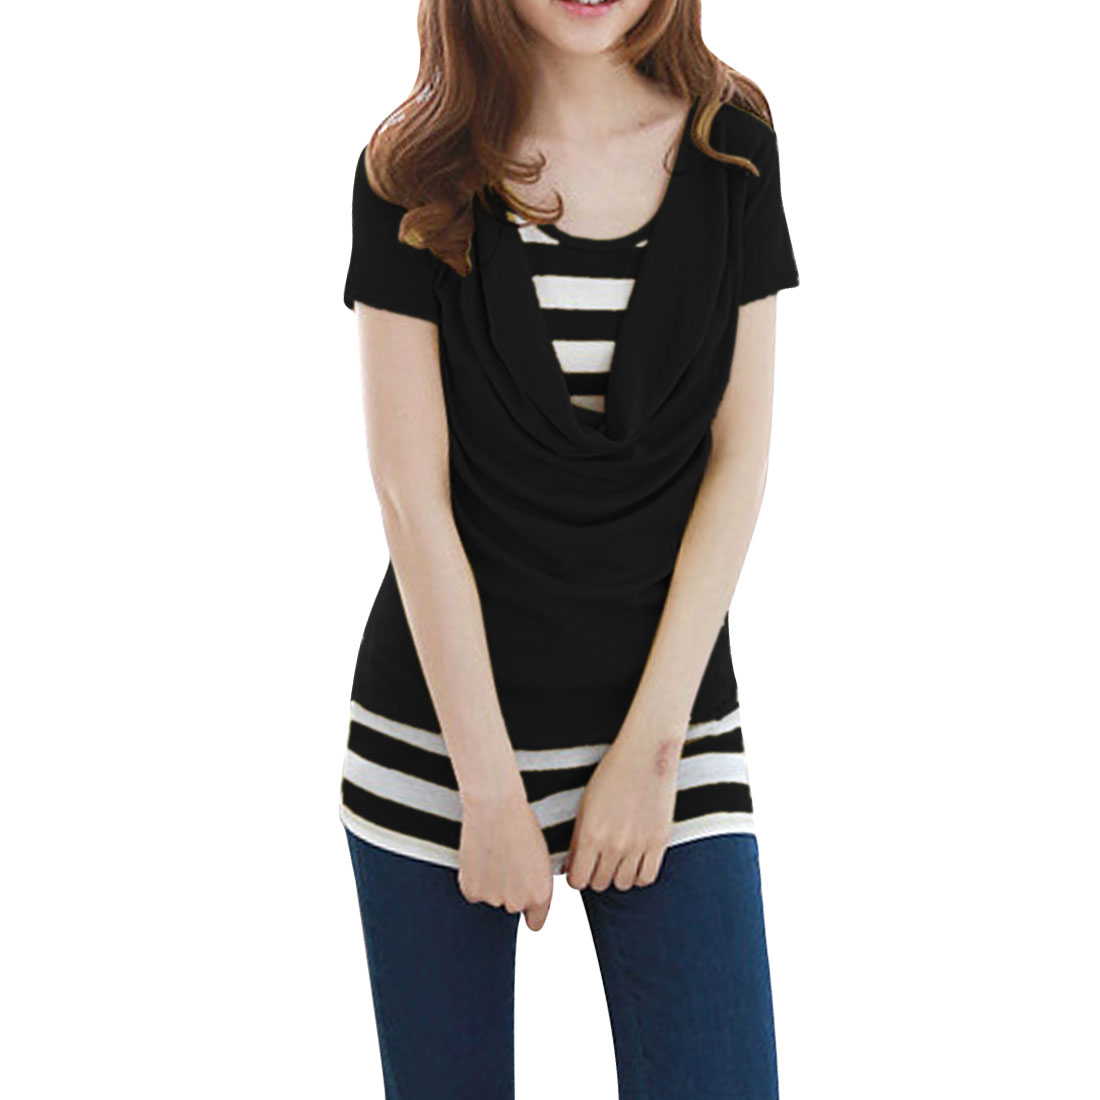 Ladies New Style Cowl Neck Short Sleeve Stripes Pattern Black White Shirt XS